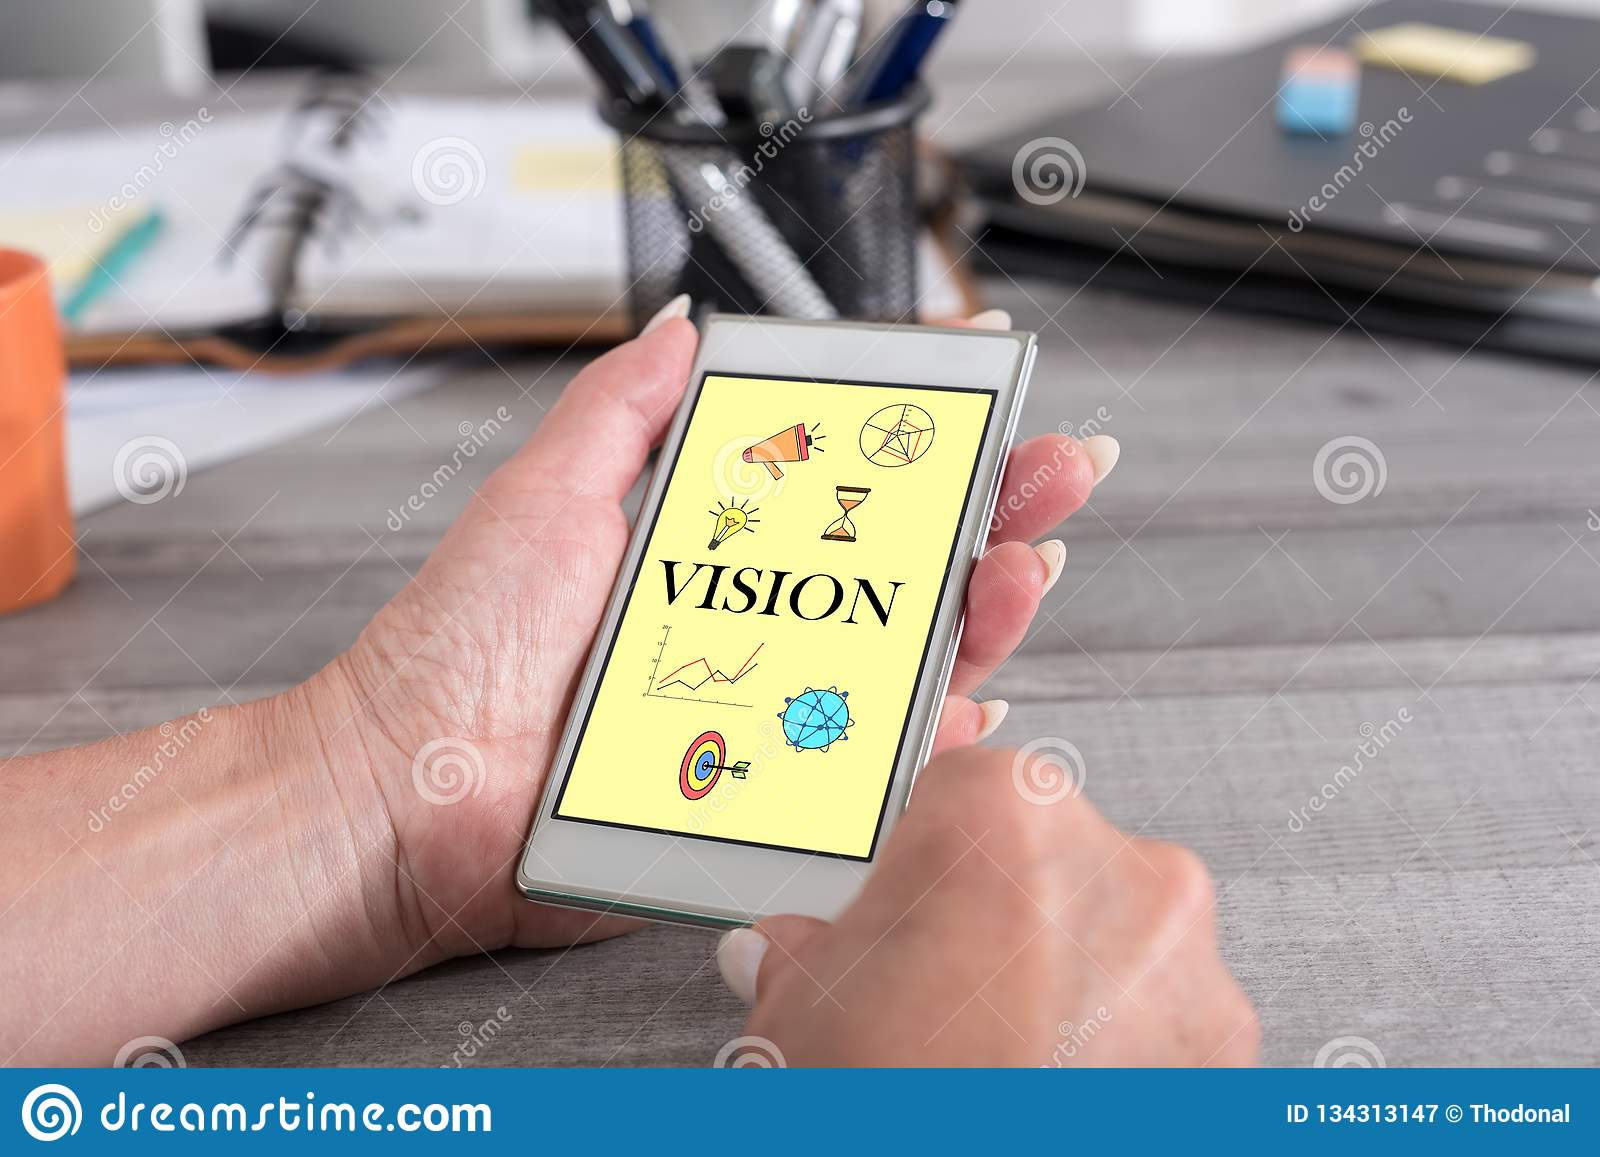 Vision concept on a smartphone